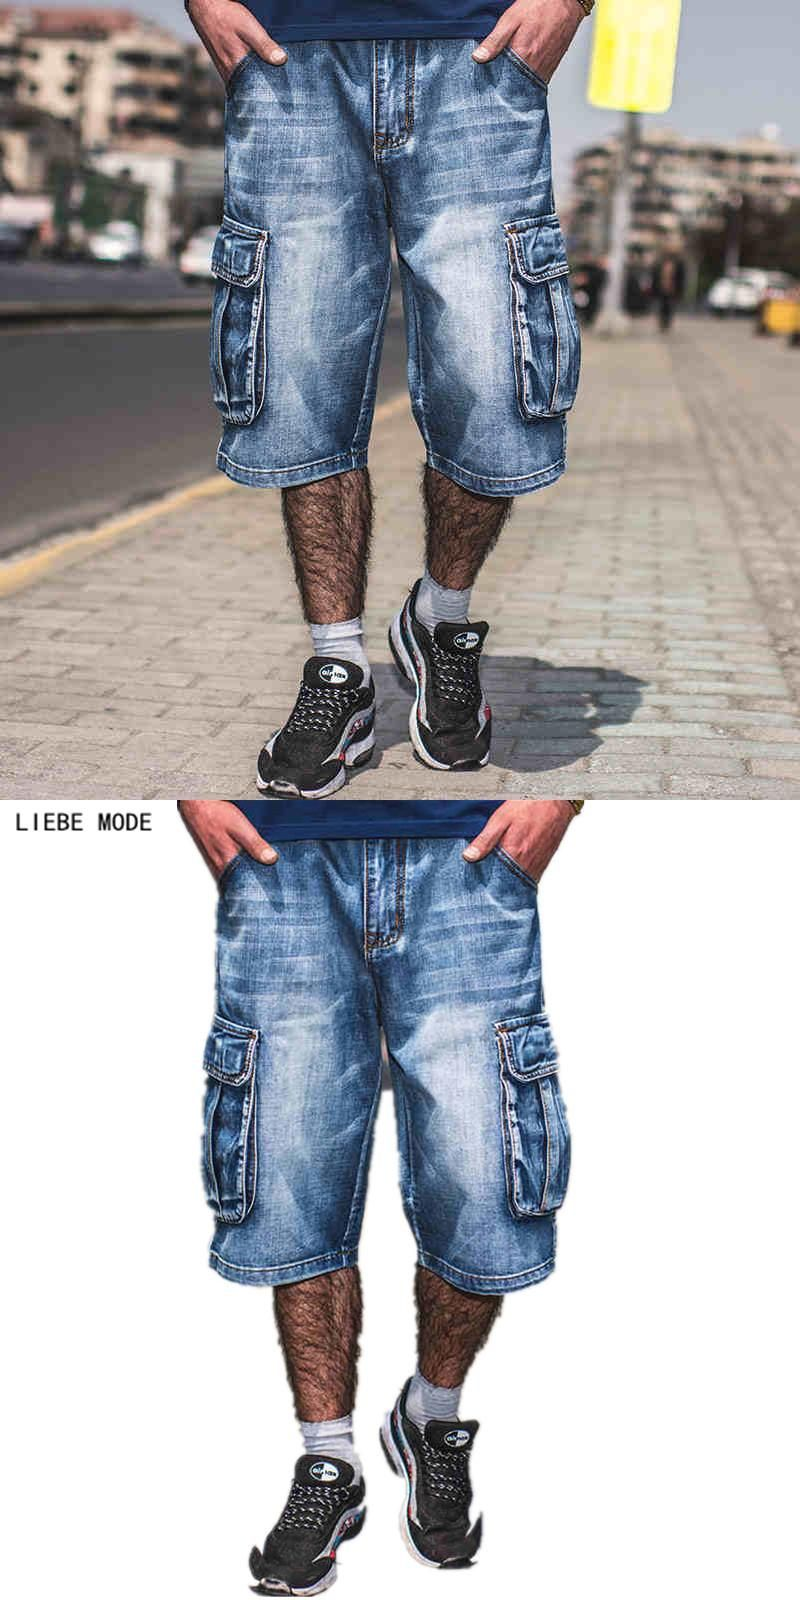 173fe7d3aa97c New Brands Mens Summer Hip Hop Denim Baggy Jeans Shorts Men Plus Size Side  Pocket Blue Loose Cargo Shorts Jeans For Men Size 46